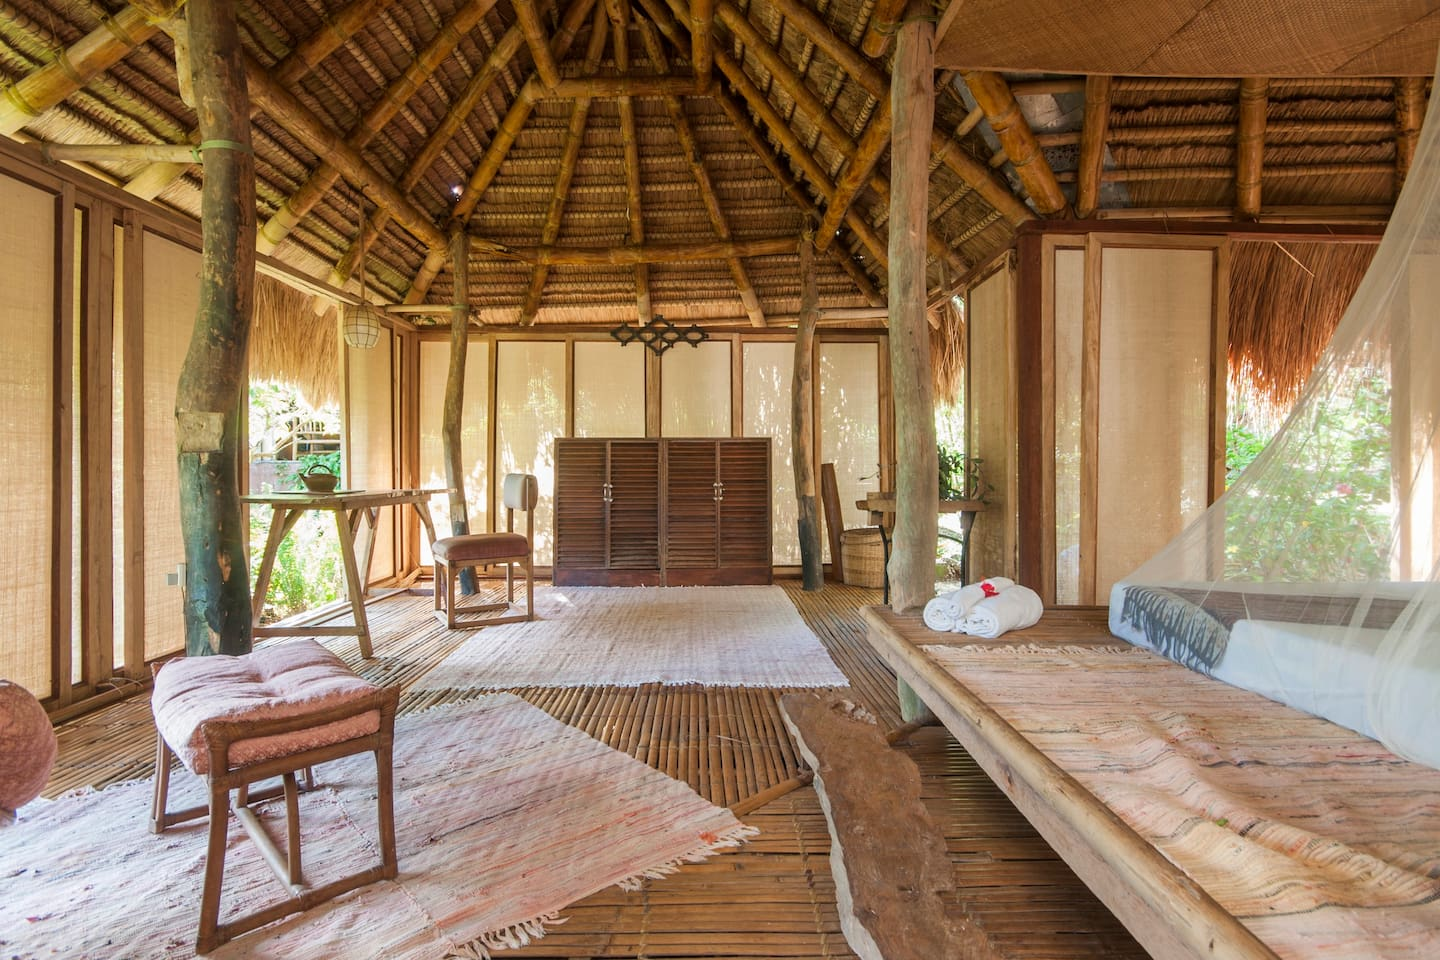 At one with nature, Muntinglupa Bungalow offers a relaxing and serene escape for those something more and different than the usual hotel stay.